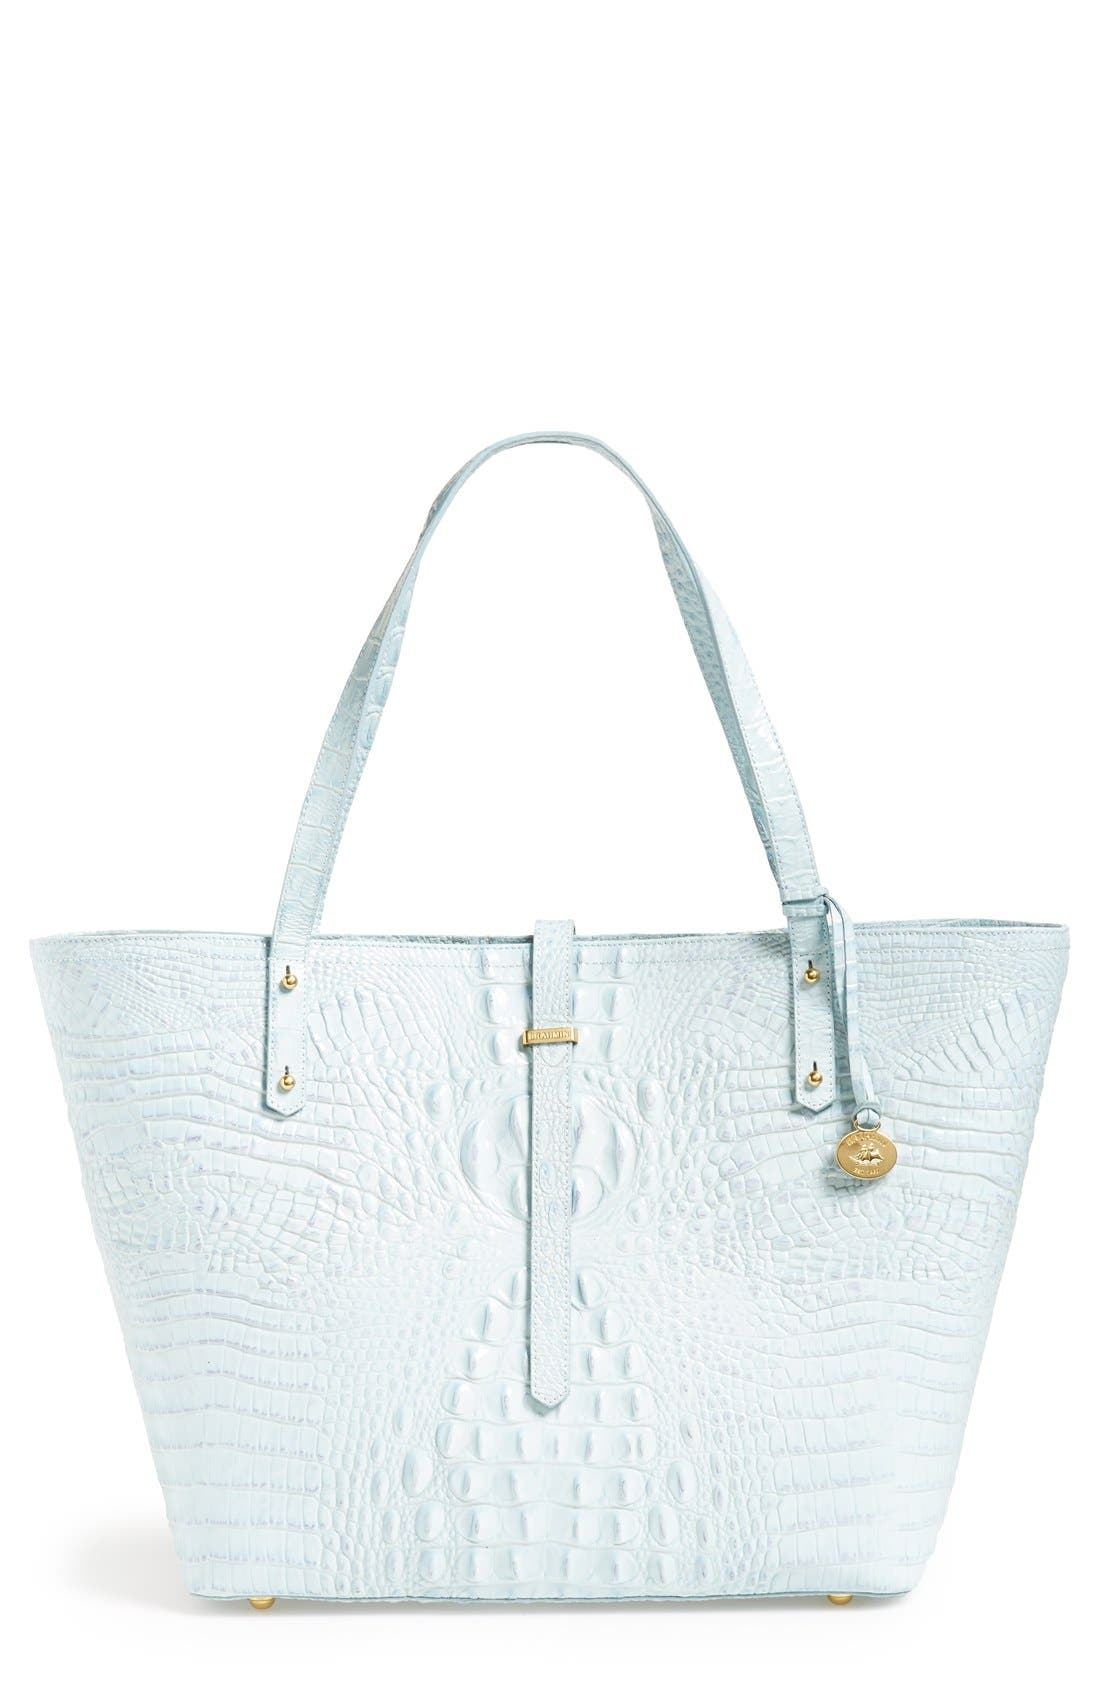 Main Image - Brahmin 'All Day' Tote